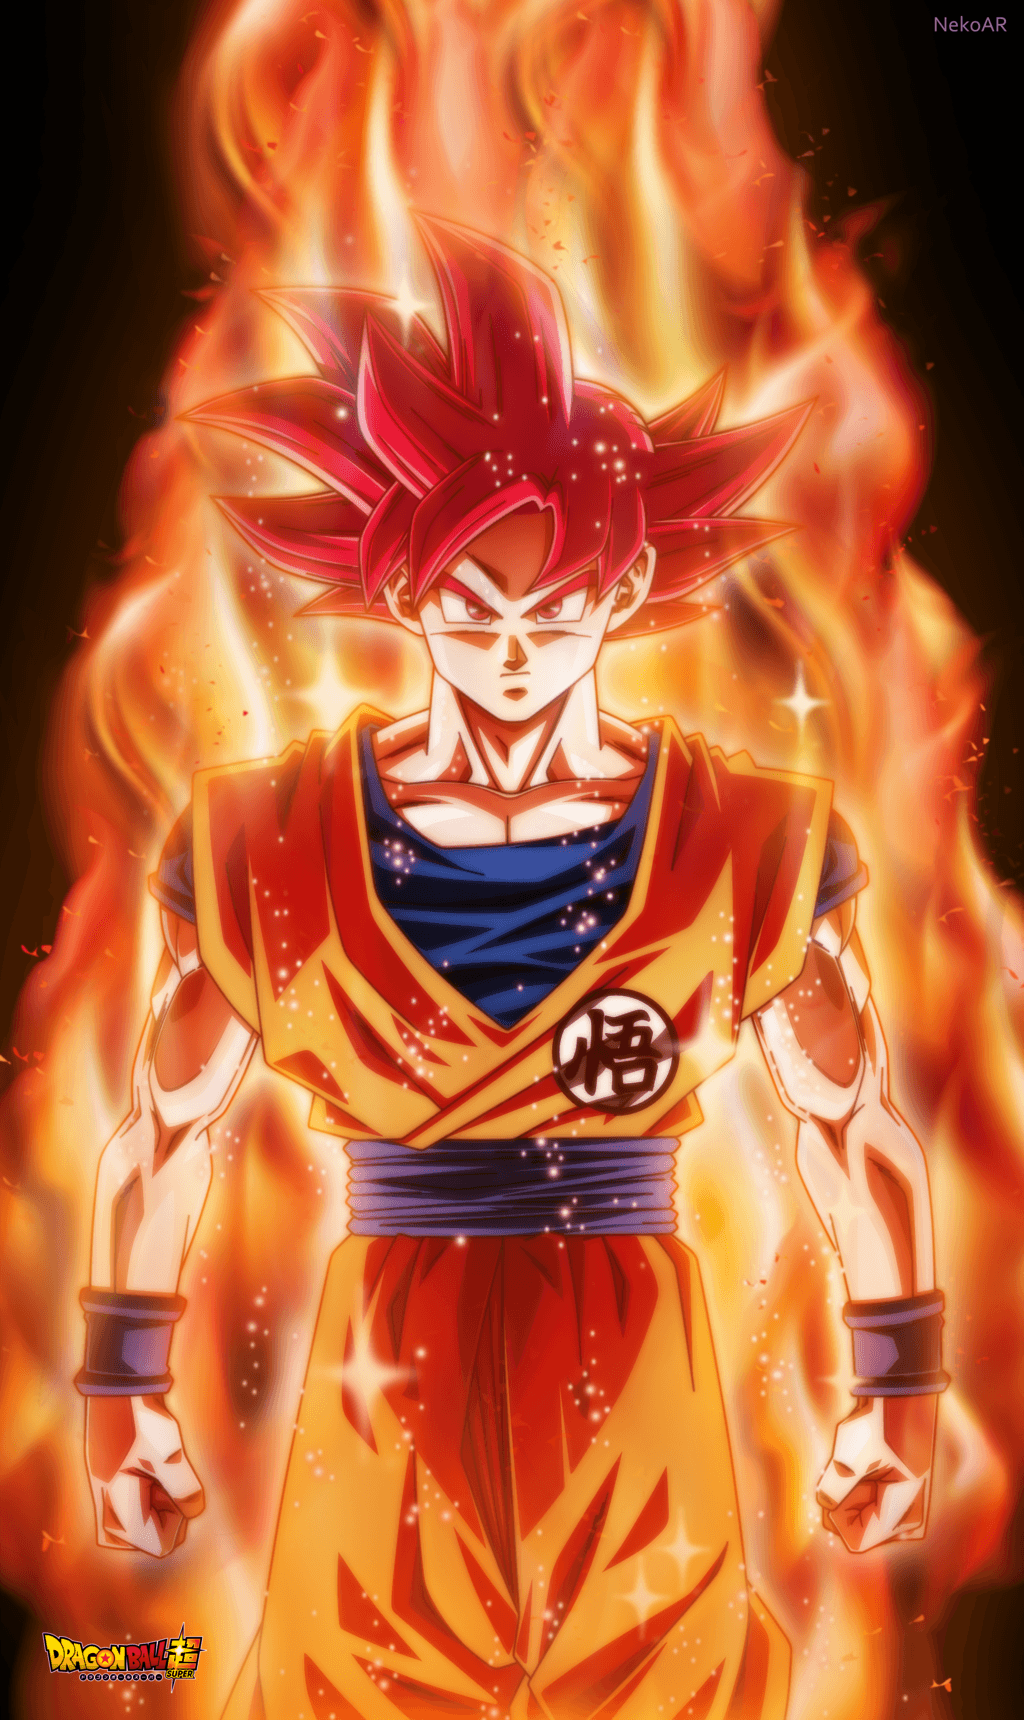 Goku Super Saiyan God Iphone Wallpapers Wallpaper Cave